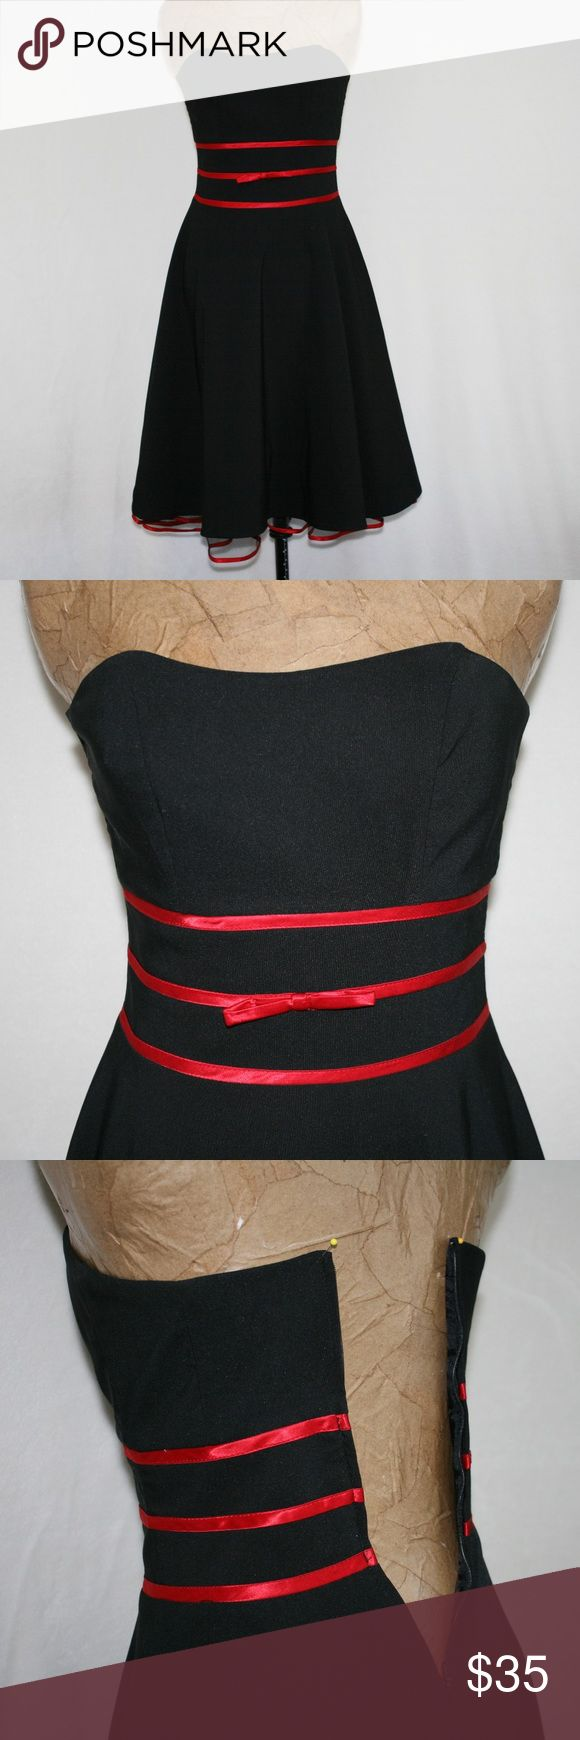 B. Smart Black and Red Prom Homecoming Dress Cute black dress with a hint of netting at the bottom with red satin ribbon edge.  Great for prom, homecoming or any other fancy occasion.  Bust is 30 inches, waist is 27, back length from center back down is 32 inches.  58% rayon, 39% polyester, 3% spandex.  (1210) B. Smart Dresses Prom